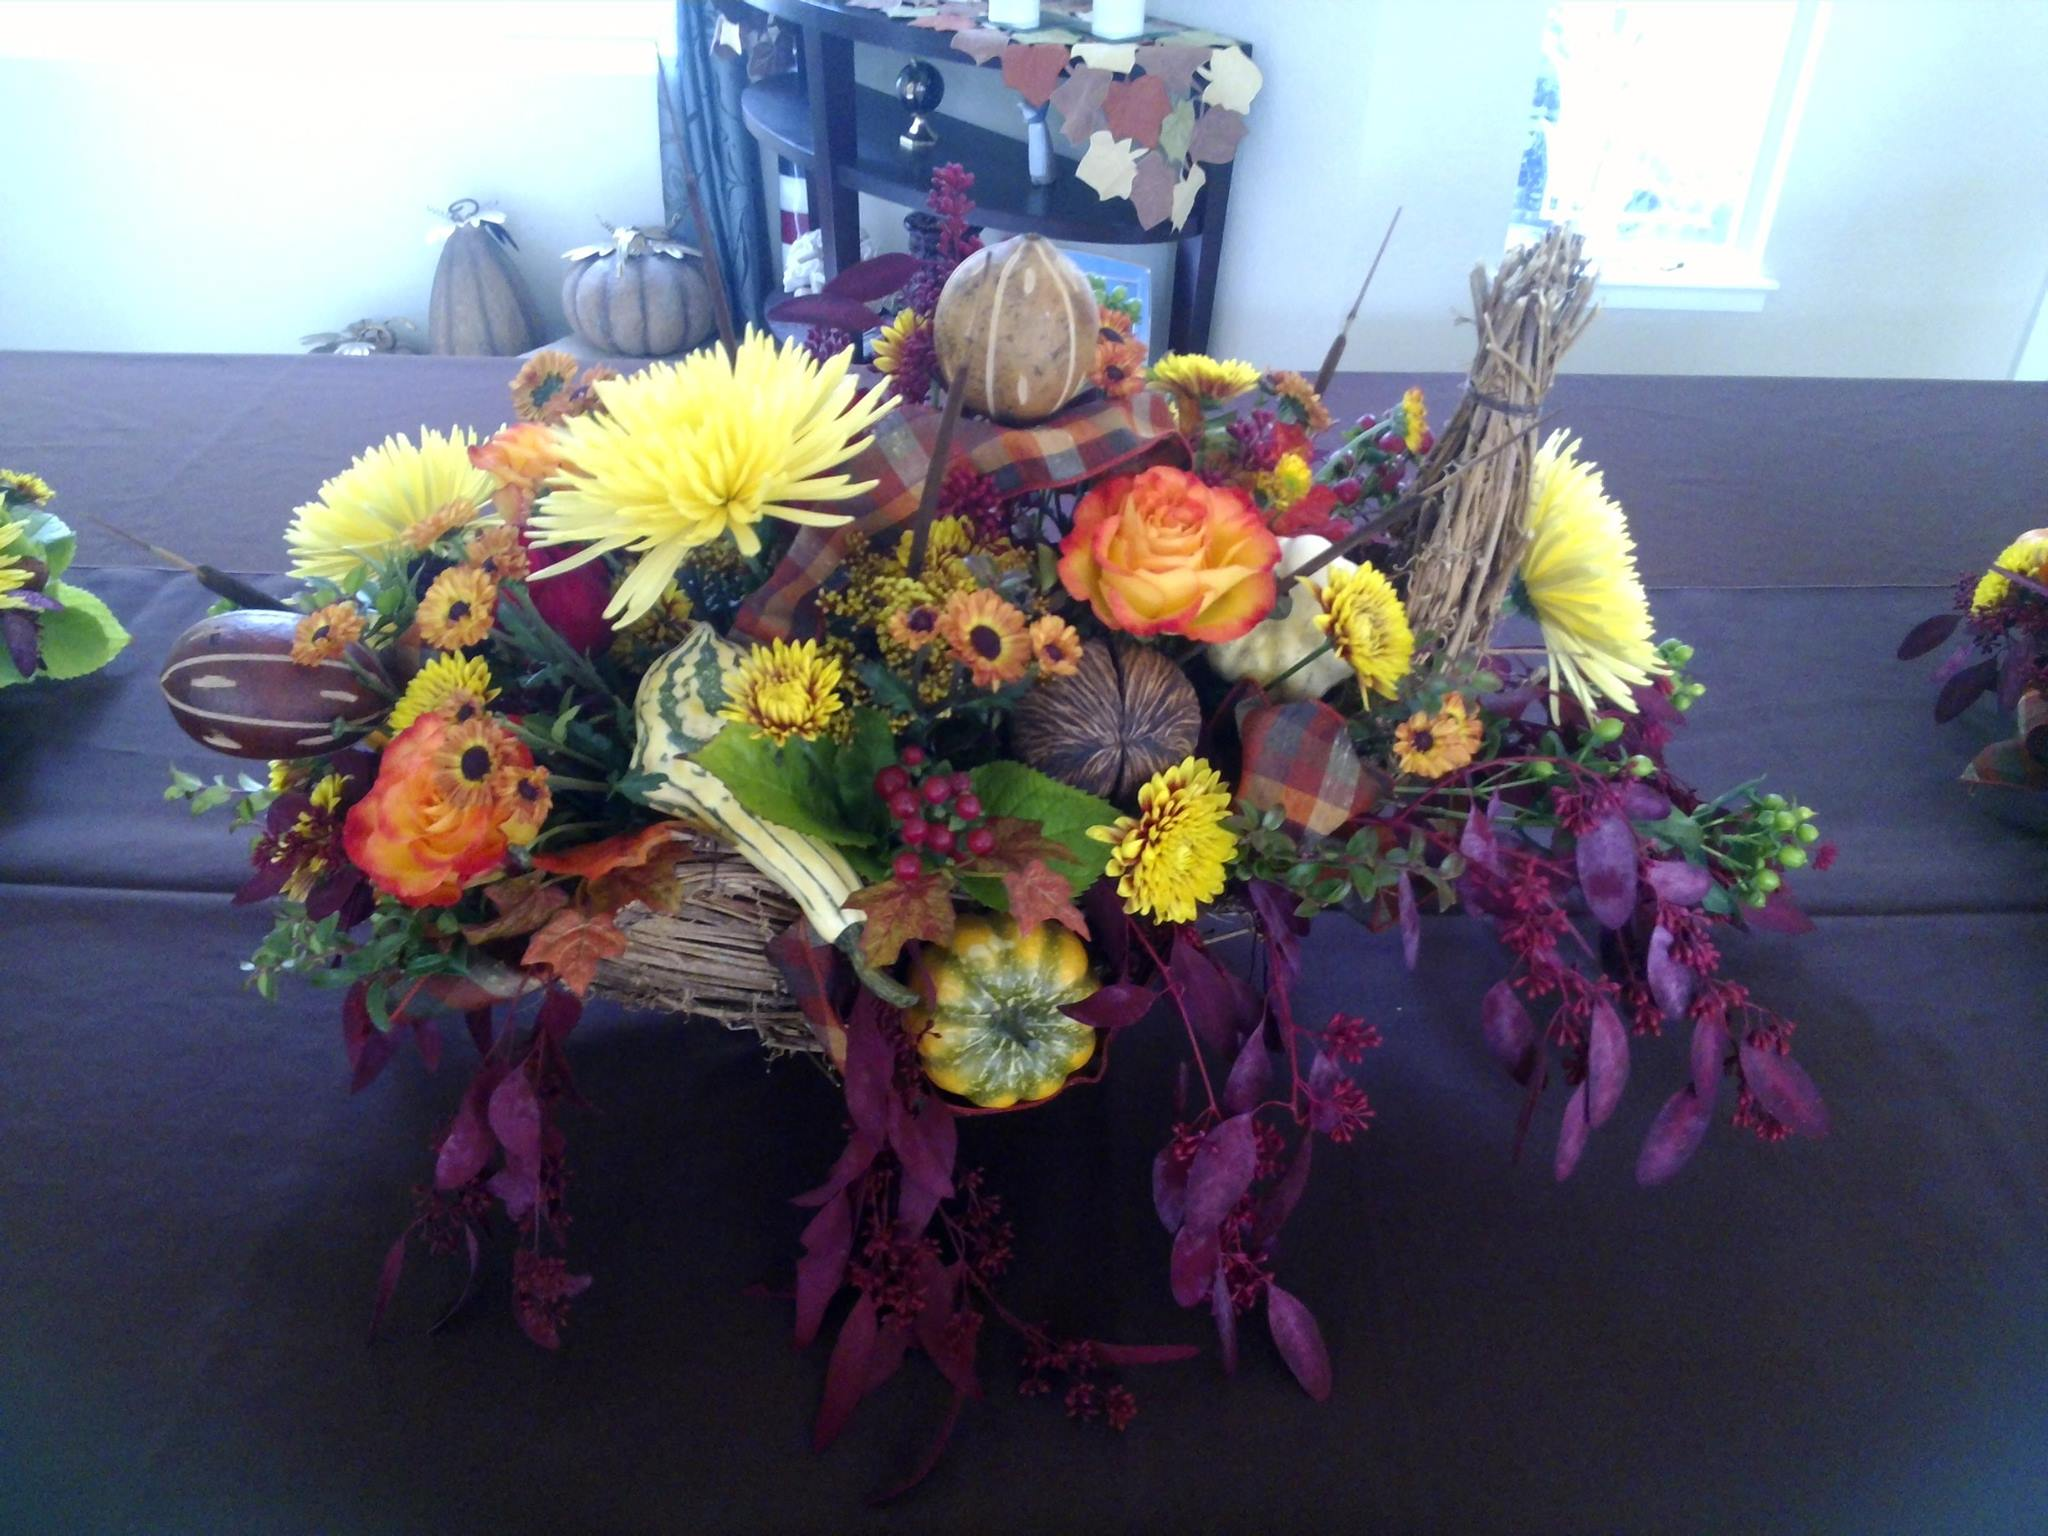 Gorgeous fall design from Auburn Country Florist in Grass Valley, CA